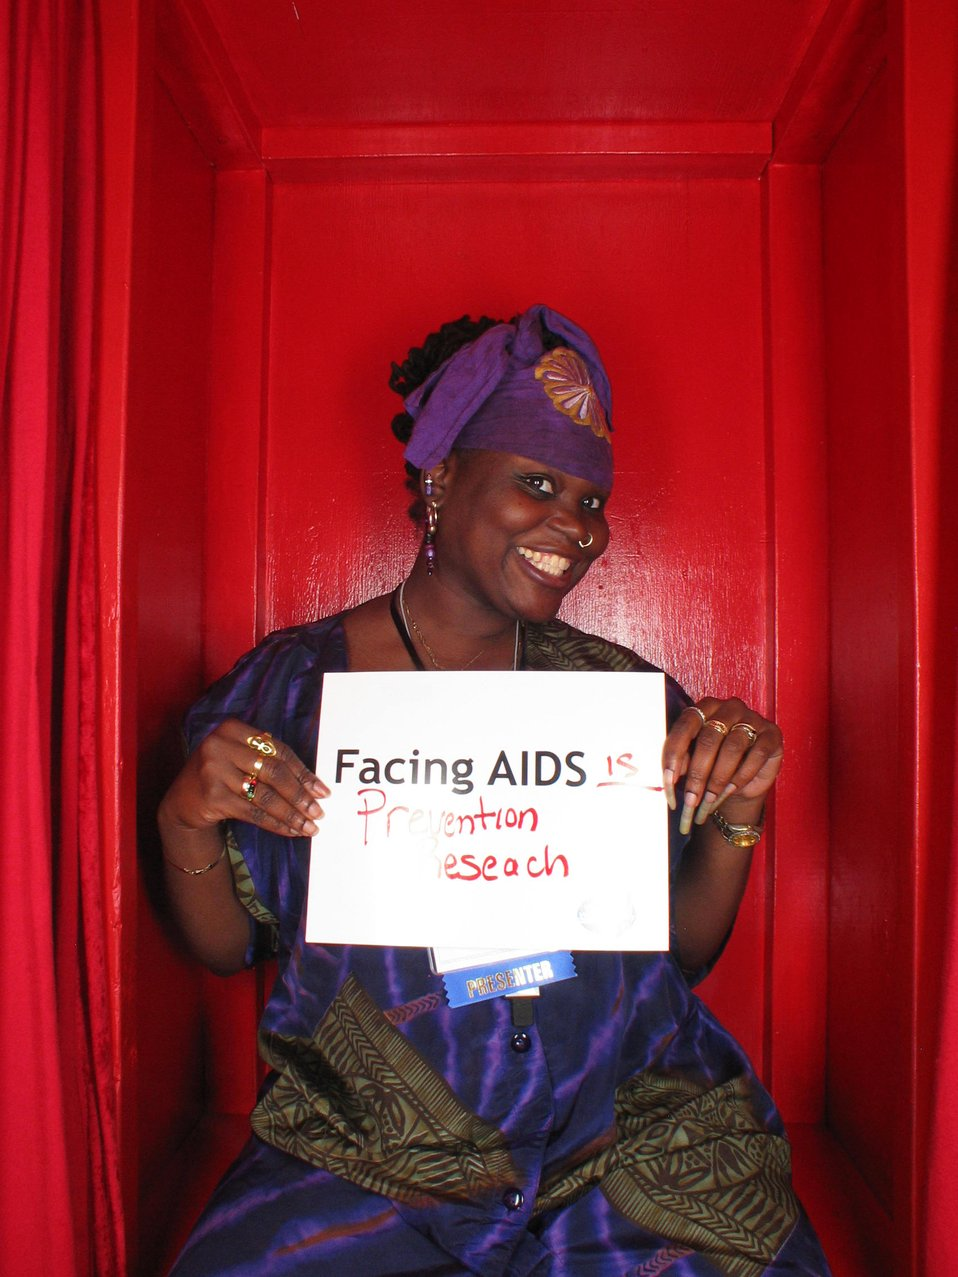 Facing AIDS is prevention research